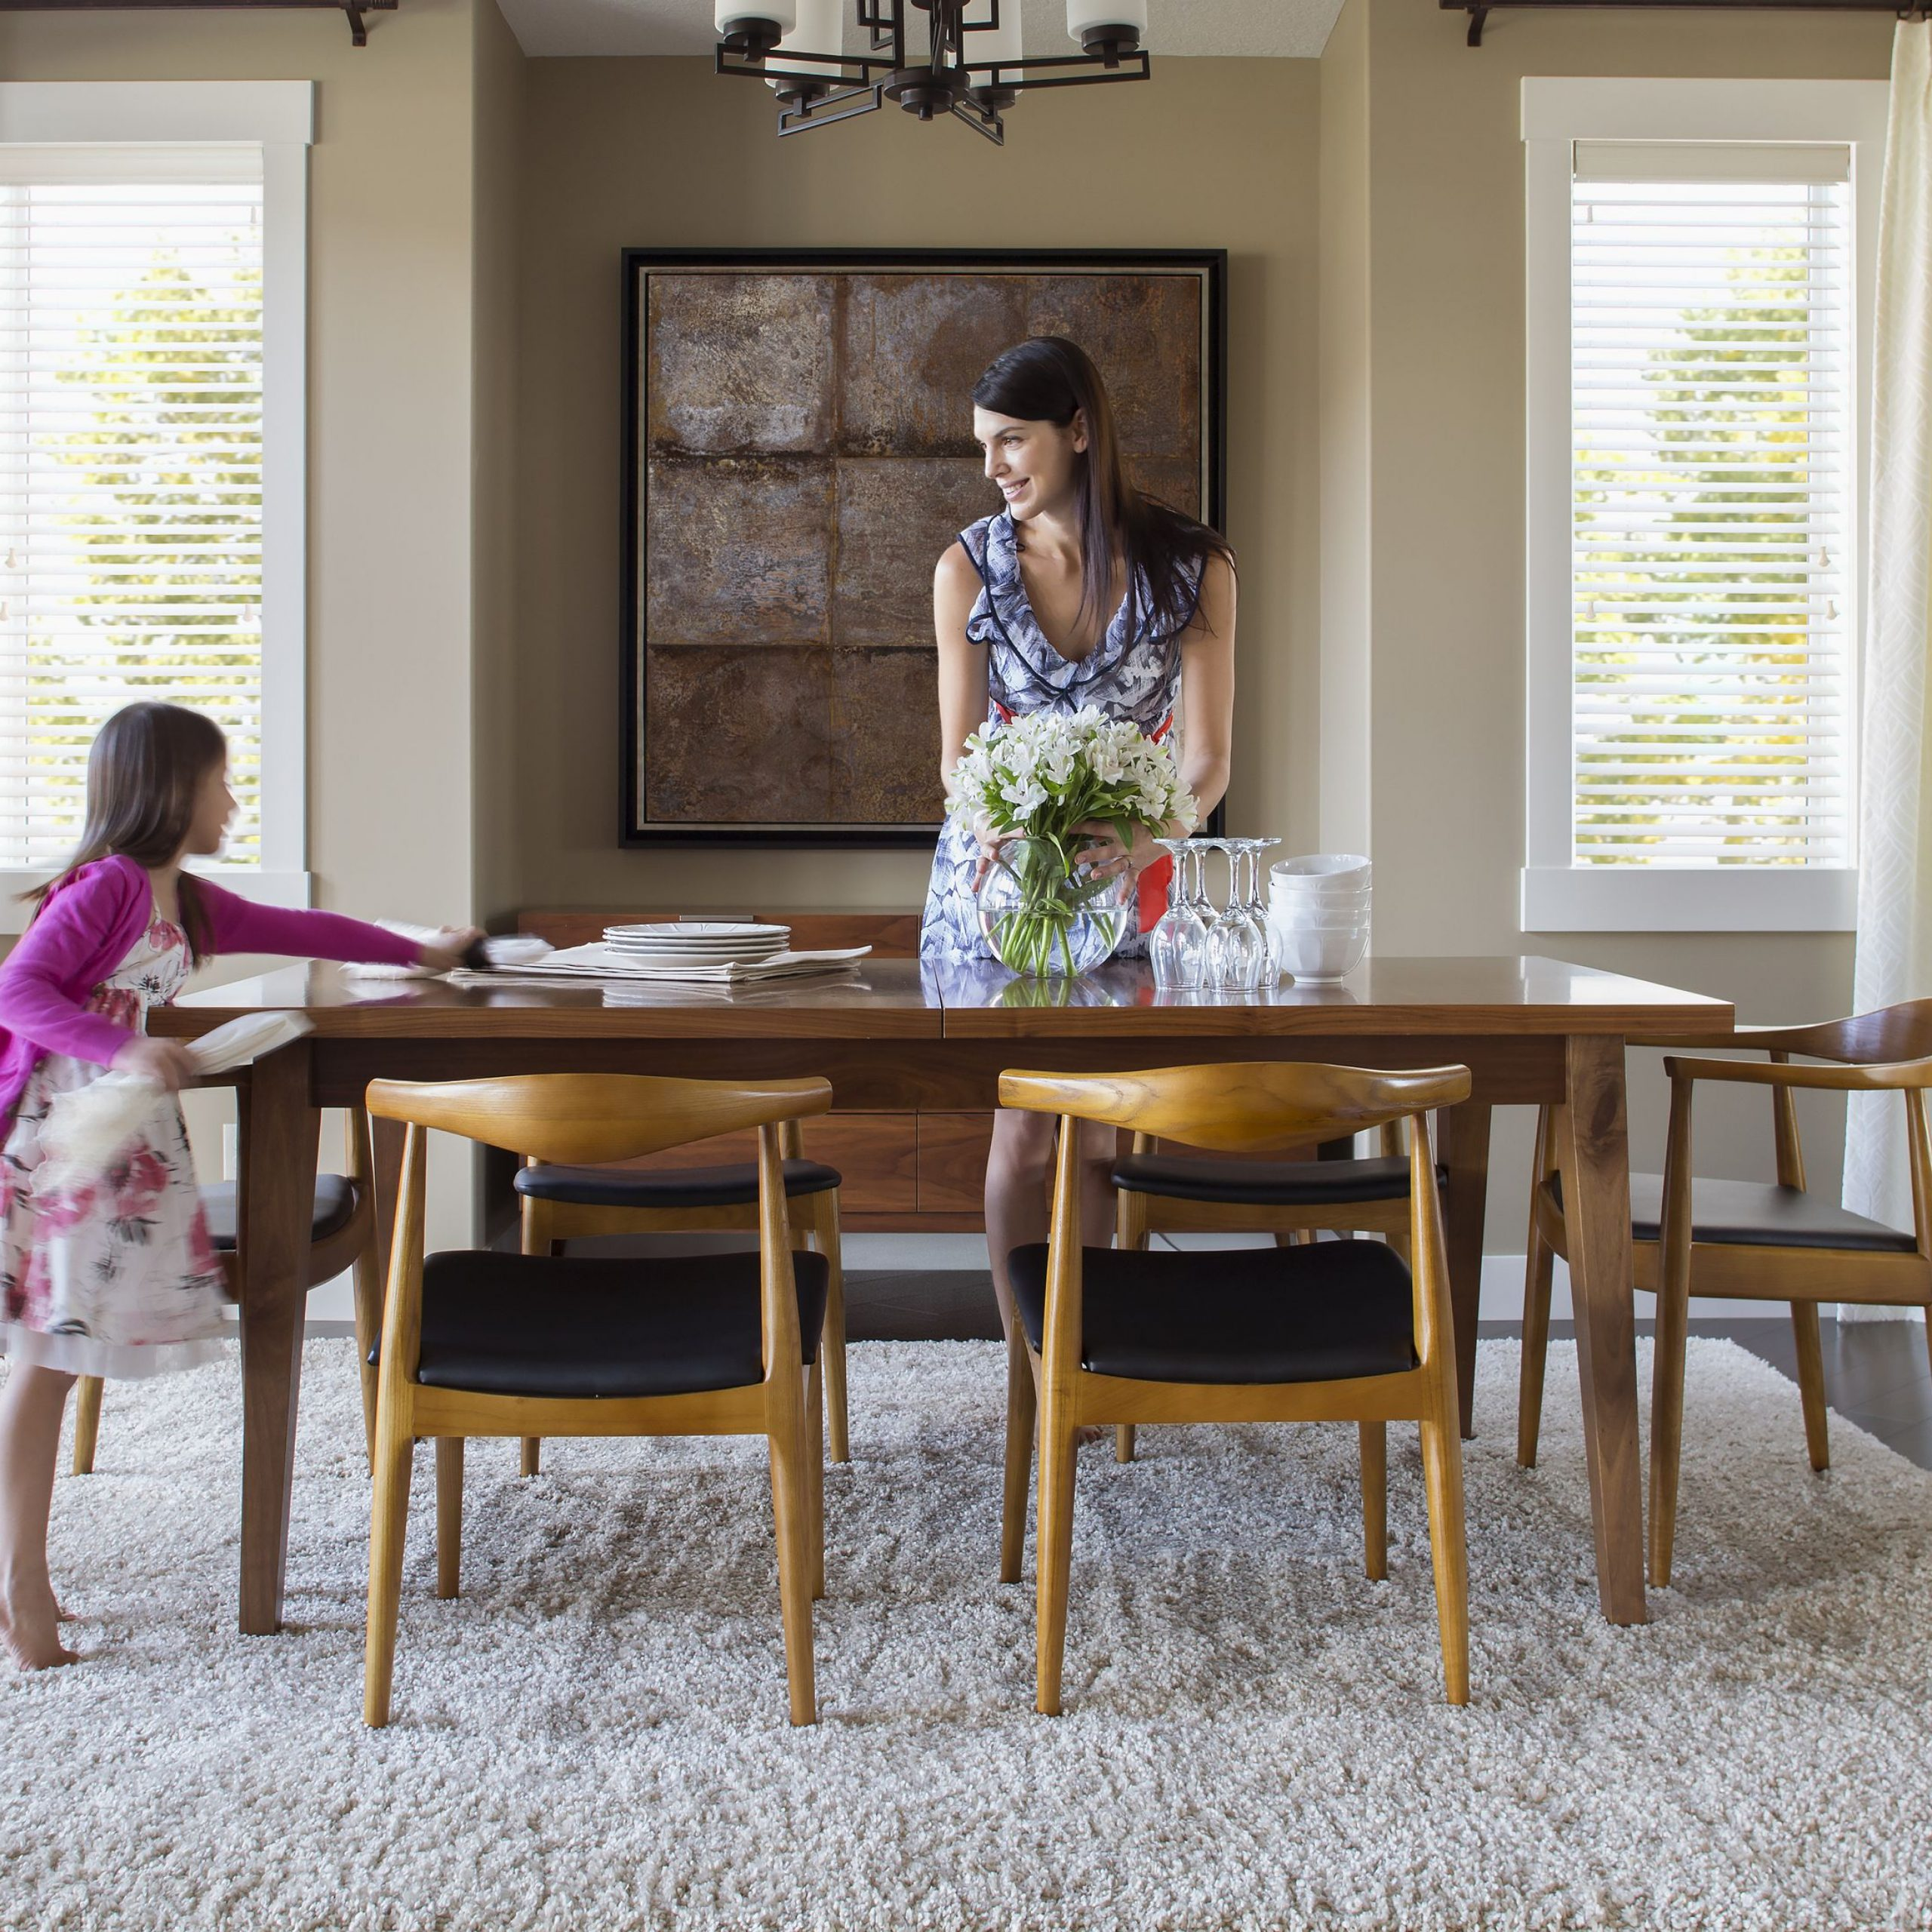 Preferred Rustic Country 8 Seating Casual Dining Tables Inside How To Choose Chairs For Your Dining Table (View 4 of 25)